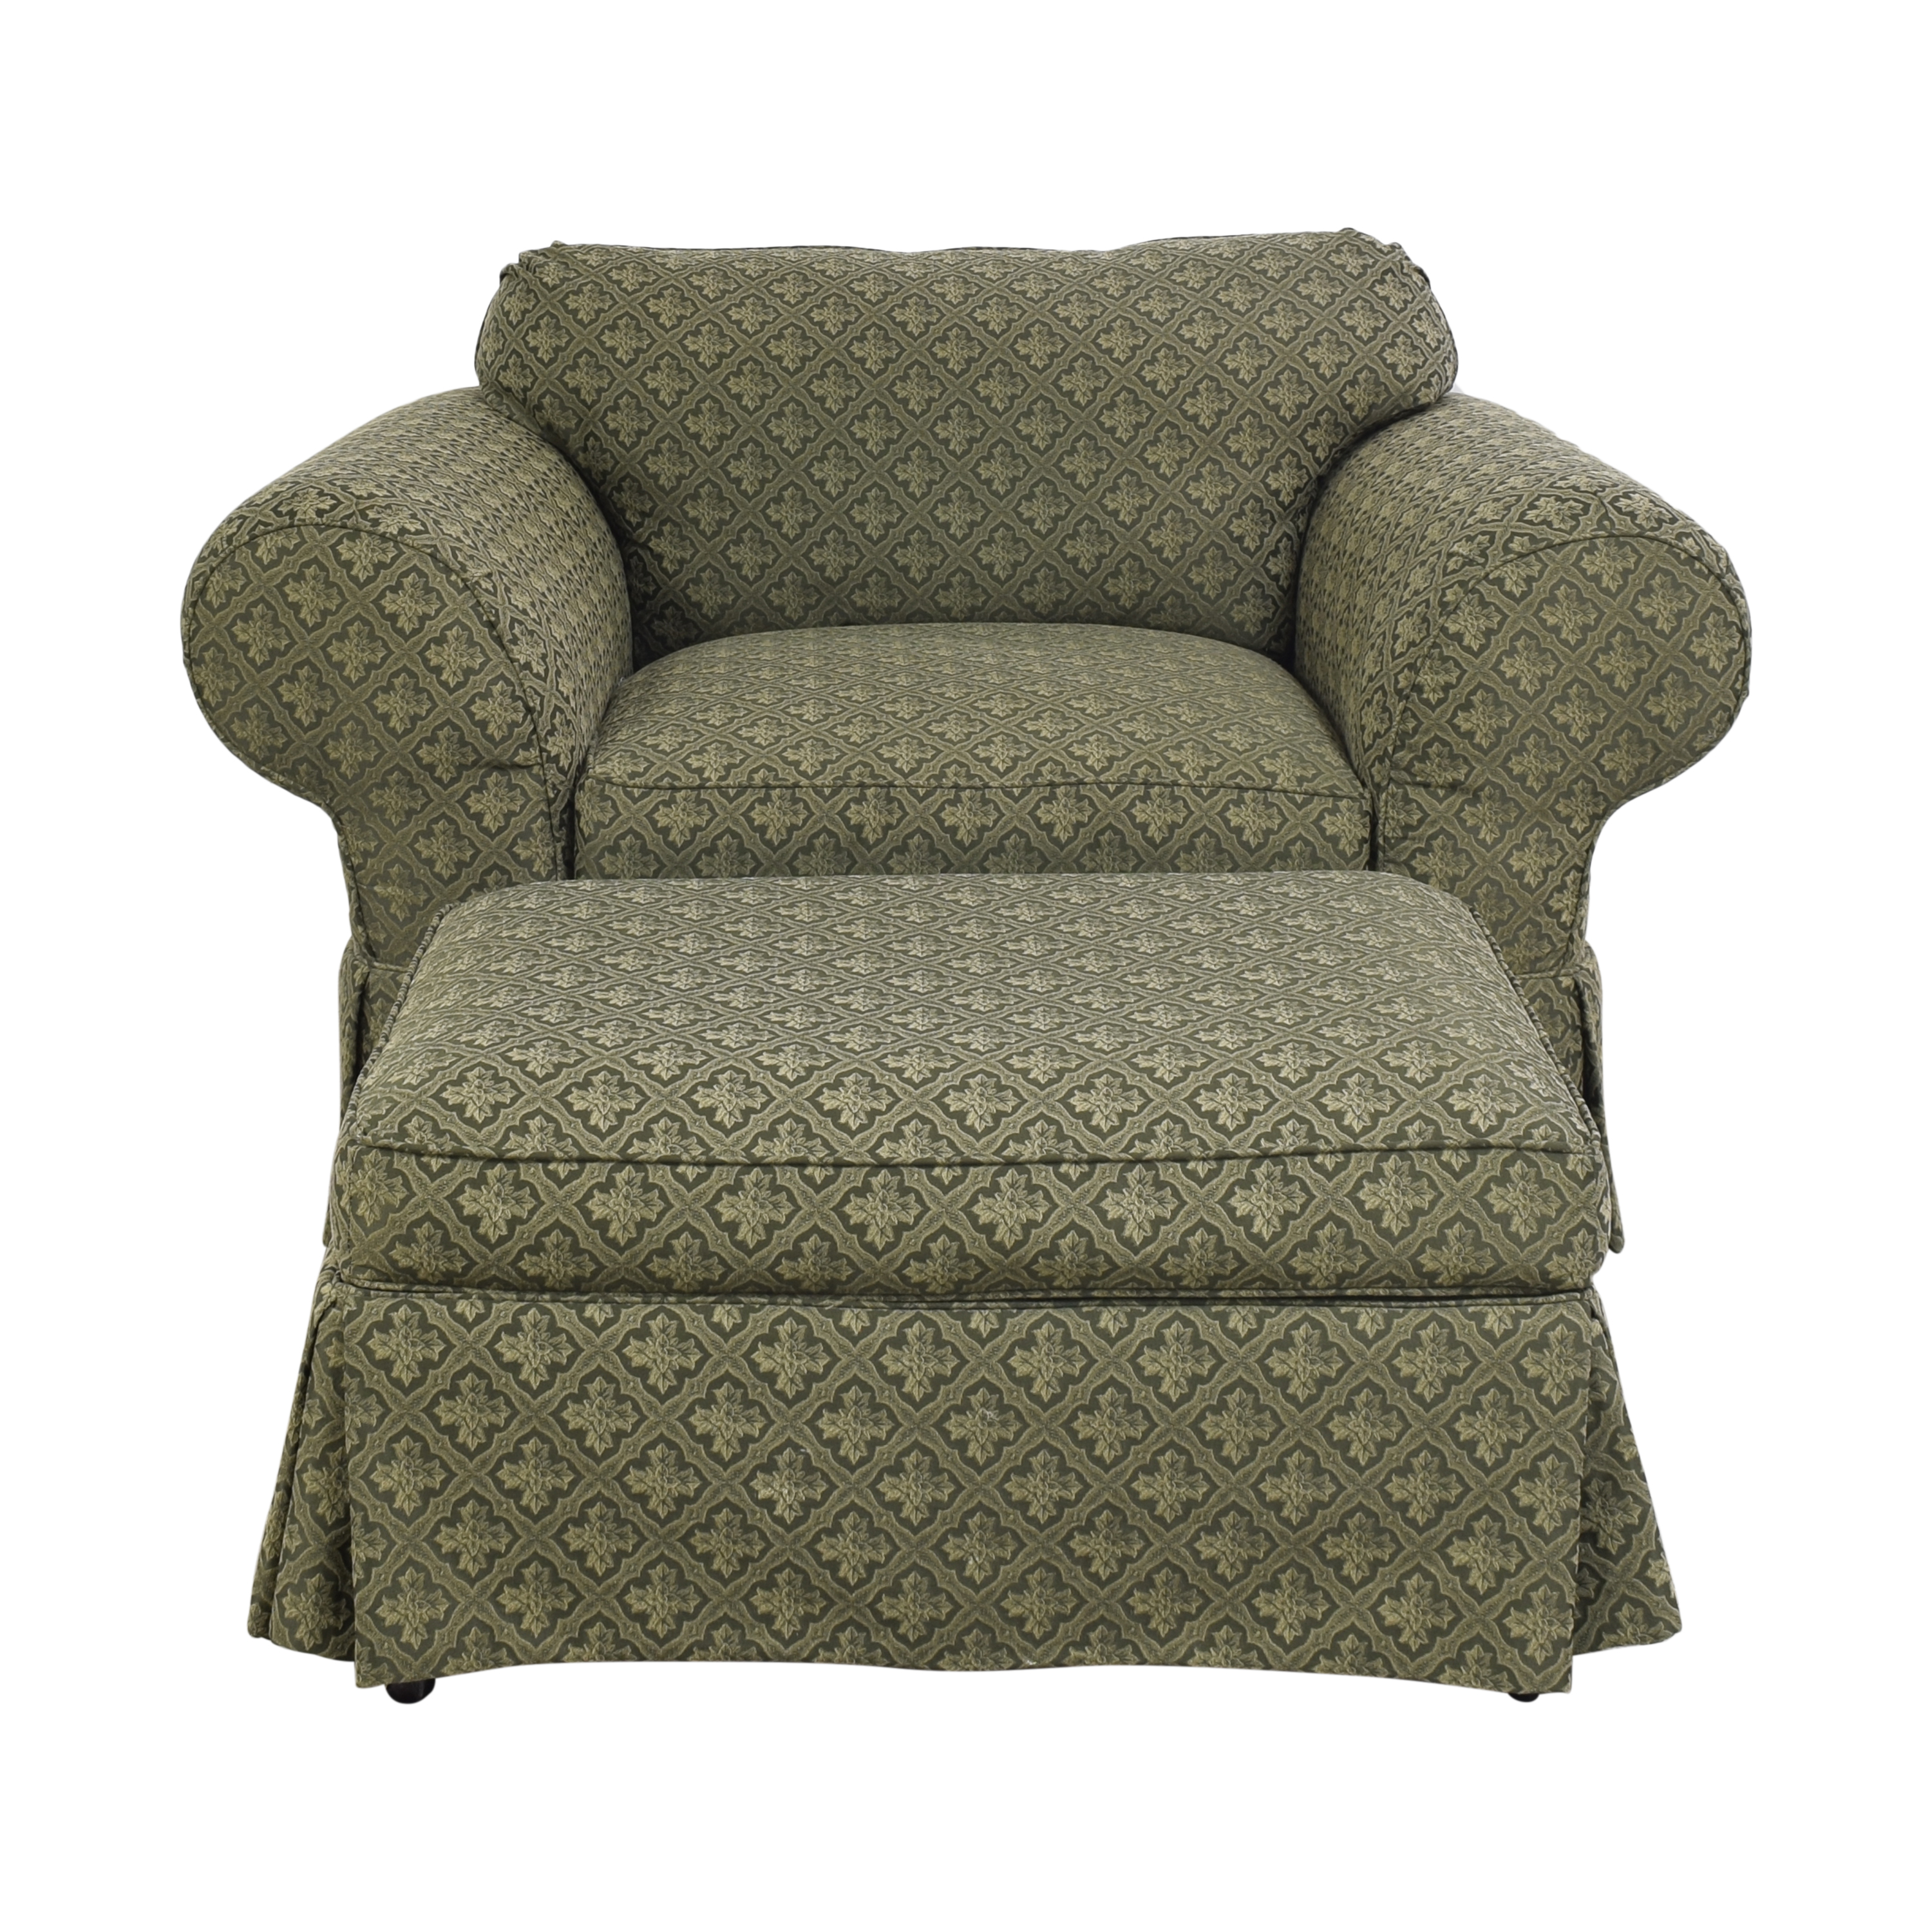 buy Broyhill Lounge Chair with Ottoman Broyhill Furniture